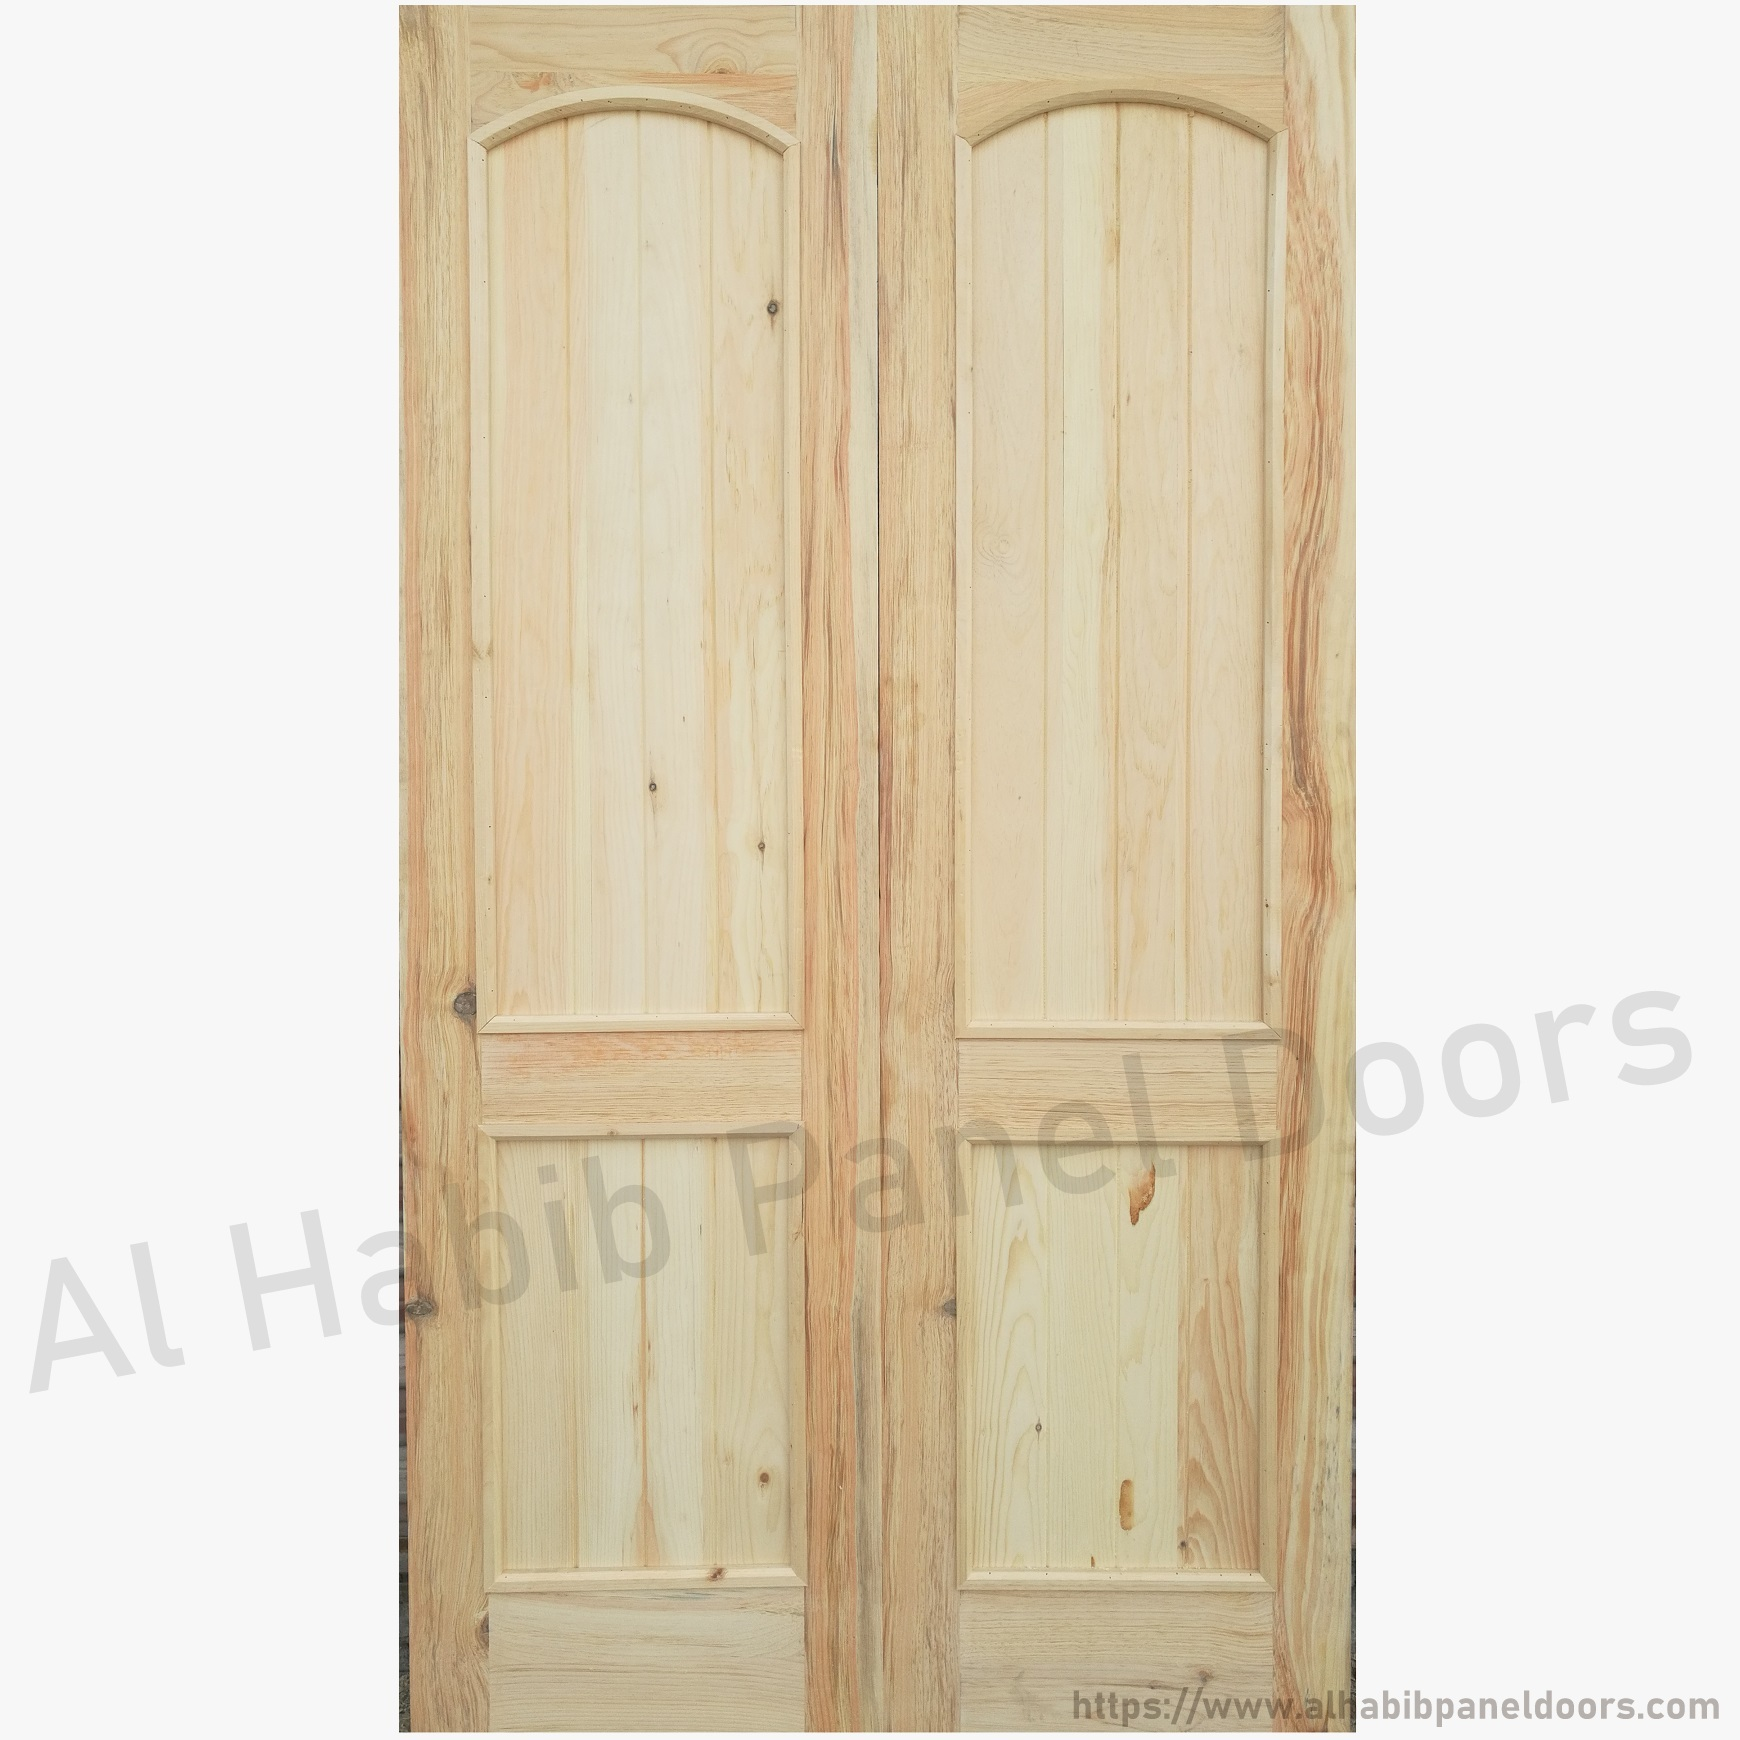 Main doors doors al habib panel doors for Main door design latest